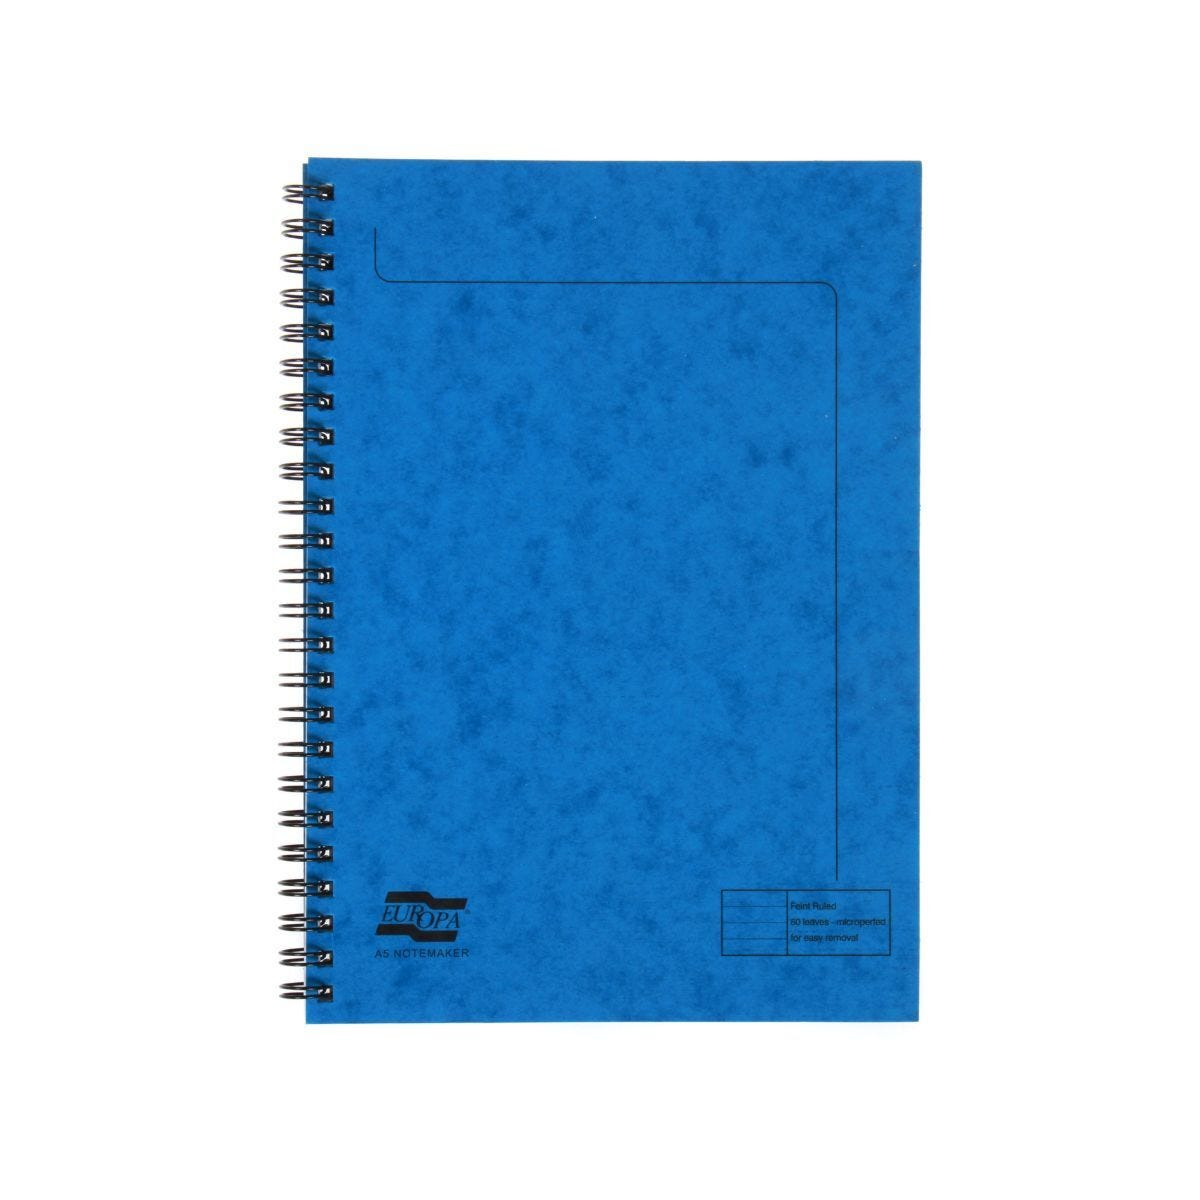 Europa A5 Notemaker 120 Pages 60 Sheets 90gsm Blue